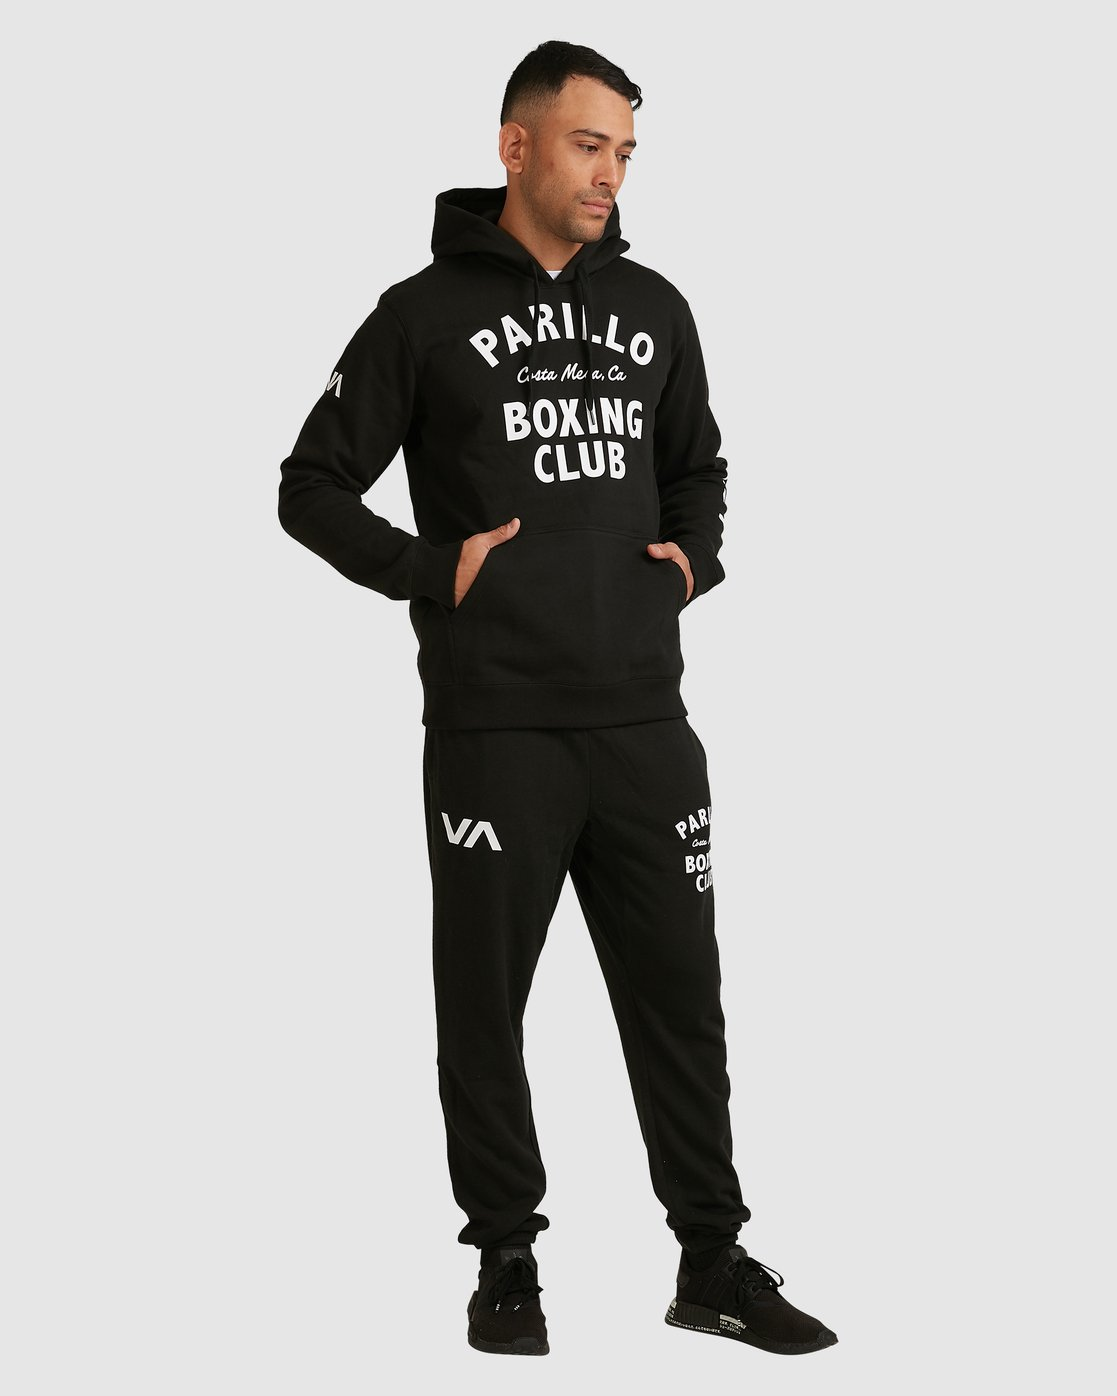 4 PARILLO BOXING CLUB HOODIE Black R317165 RVCA